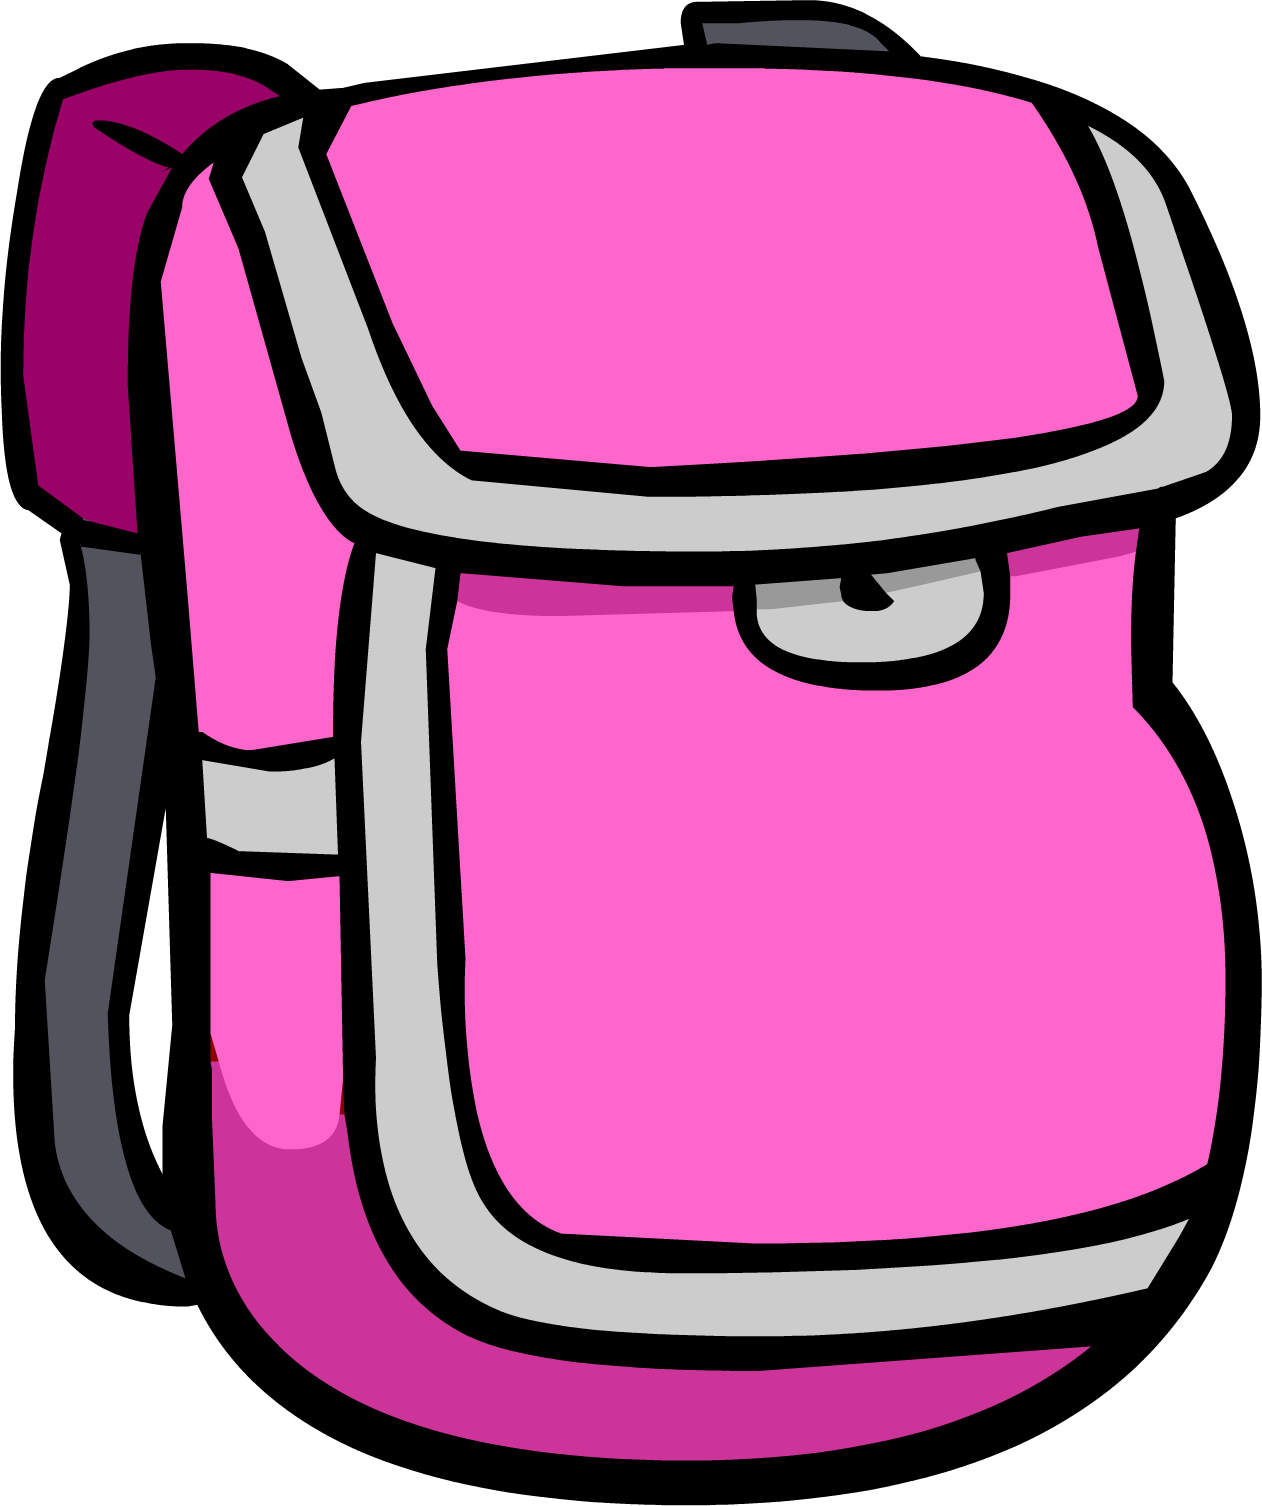 Book bag clipart free image Backpack Clipart pink backpack - Free Clipart on Dumielauxepices.net image